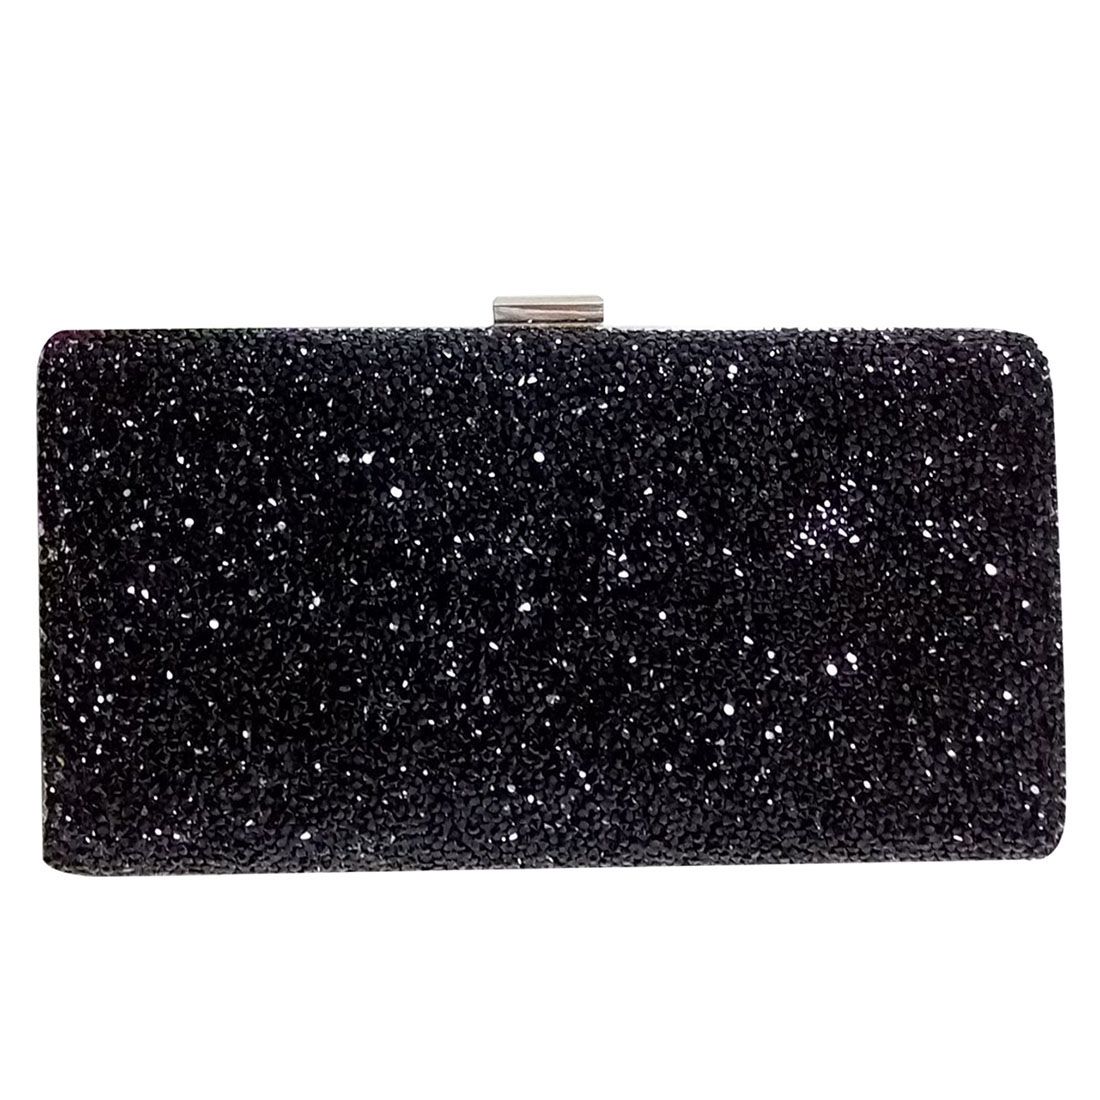 Woman Evening bag Diamond Rhinestone hand Clutch Crystal Wallet Wedding Purse Party Banquet